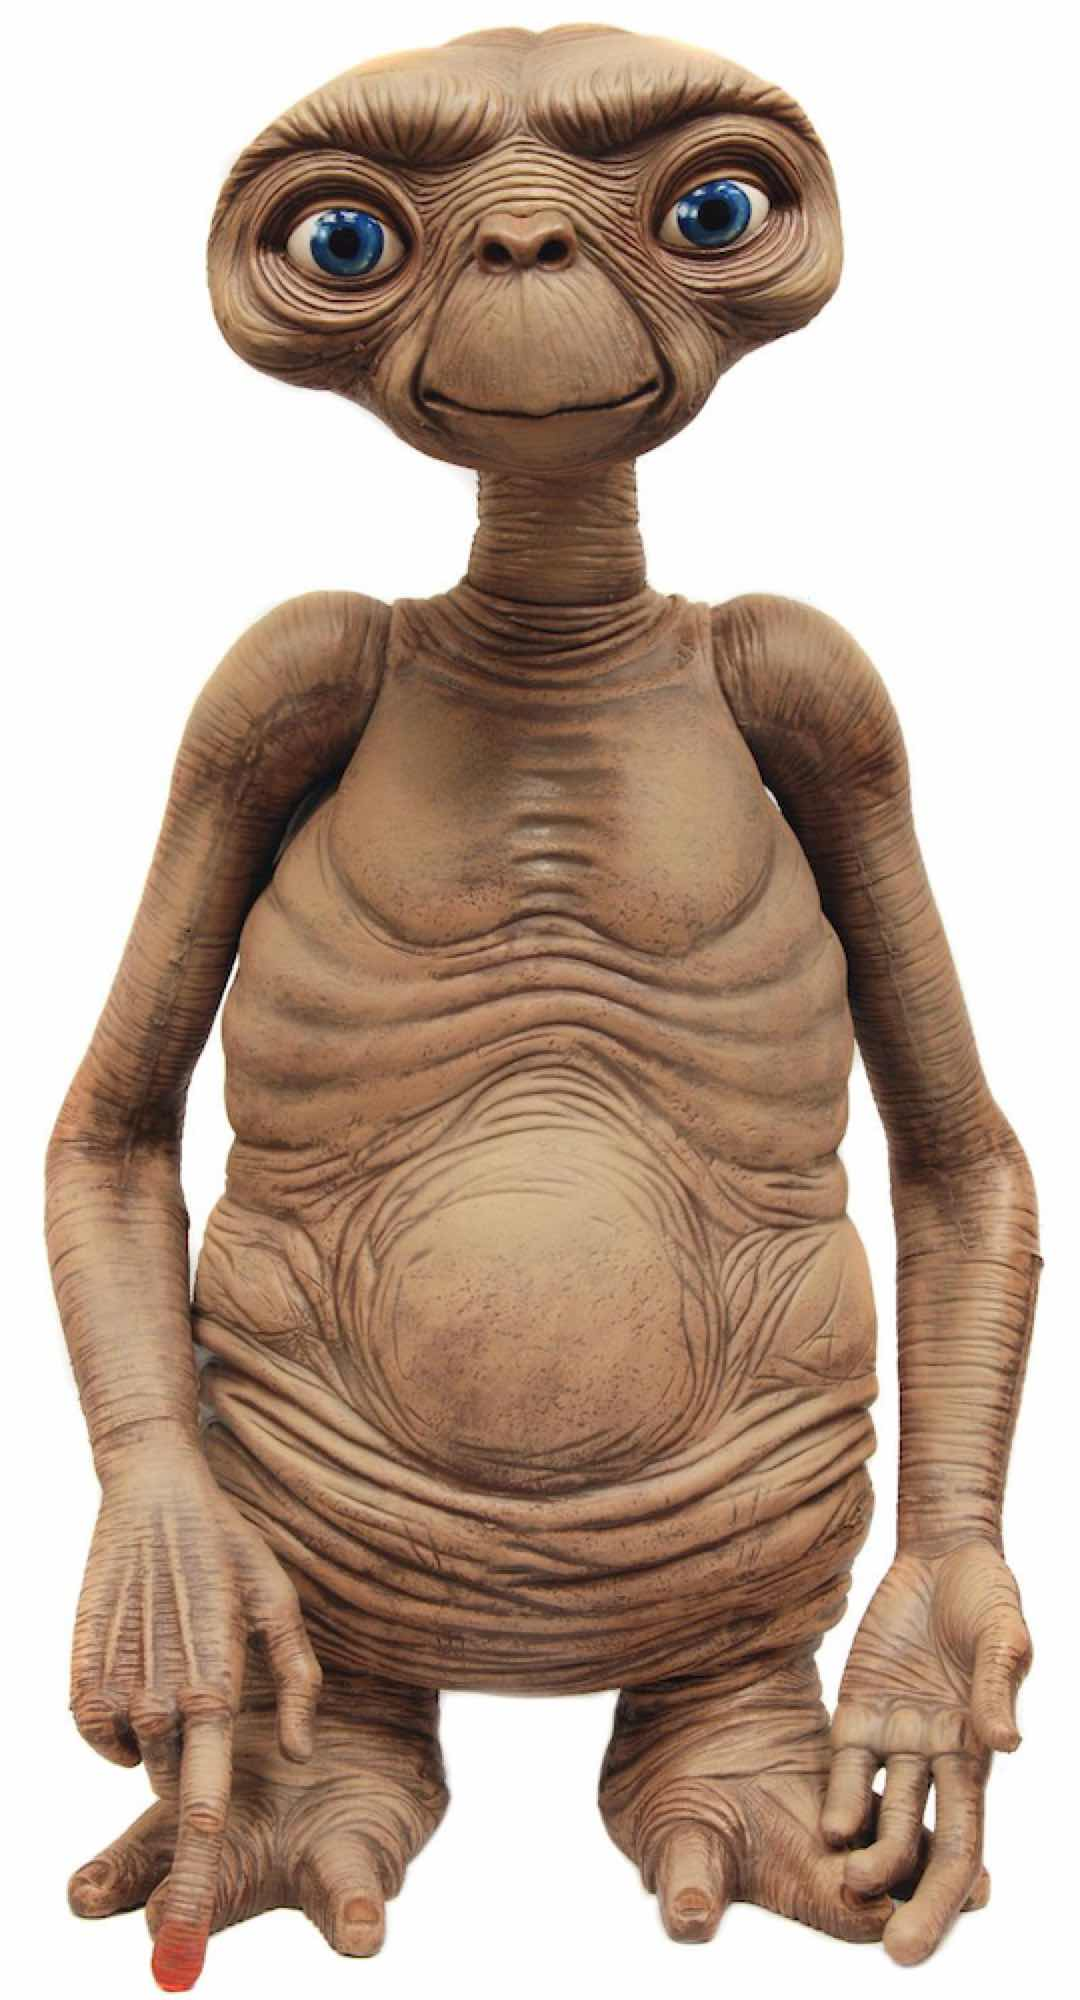 E.T. EL EXTRATERRESTRE LATEX PROP REPLICA 88.90 CM LIMITED EDITION